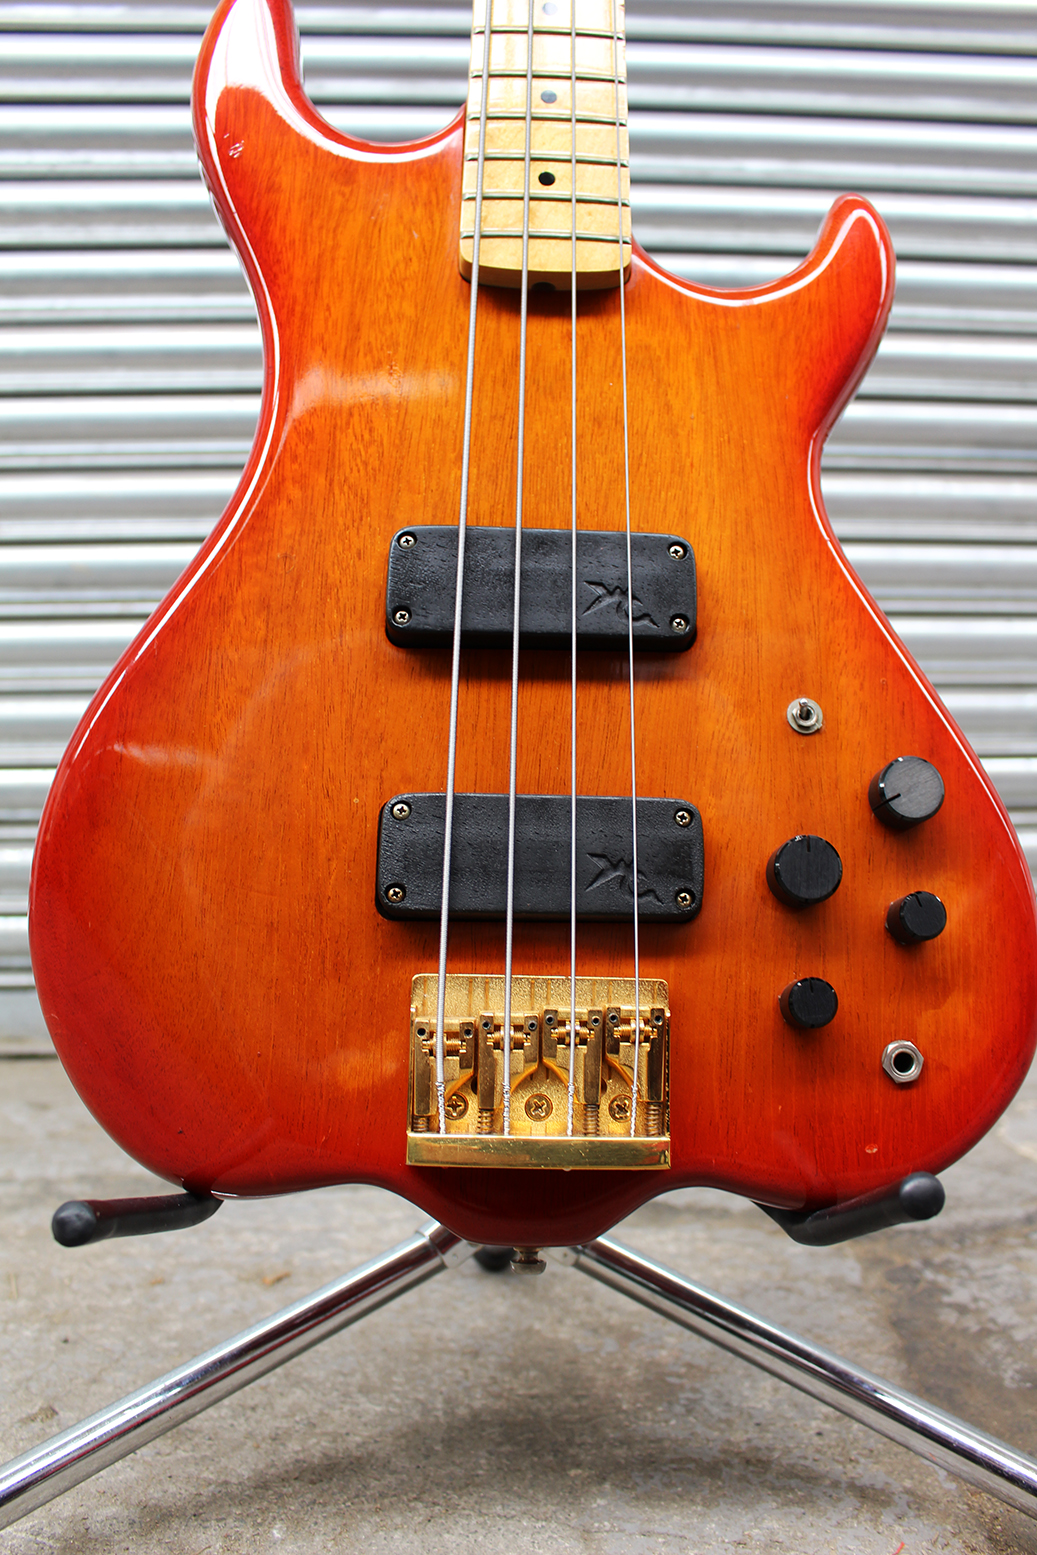 sold wilkes active long scale bass guitar circa 1983 stunning short scale bass uk. Black Bedroom Furniture Sets. Home Design Ideas